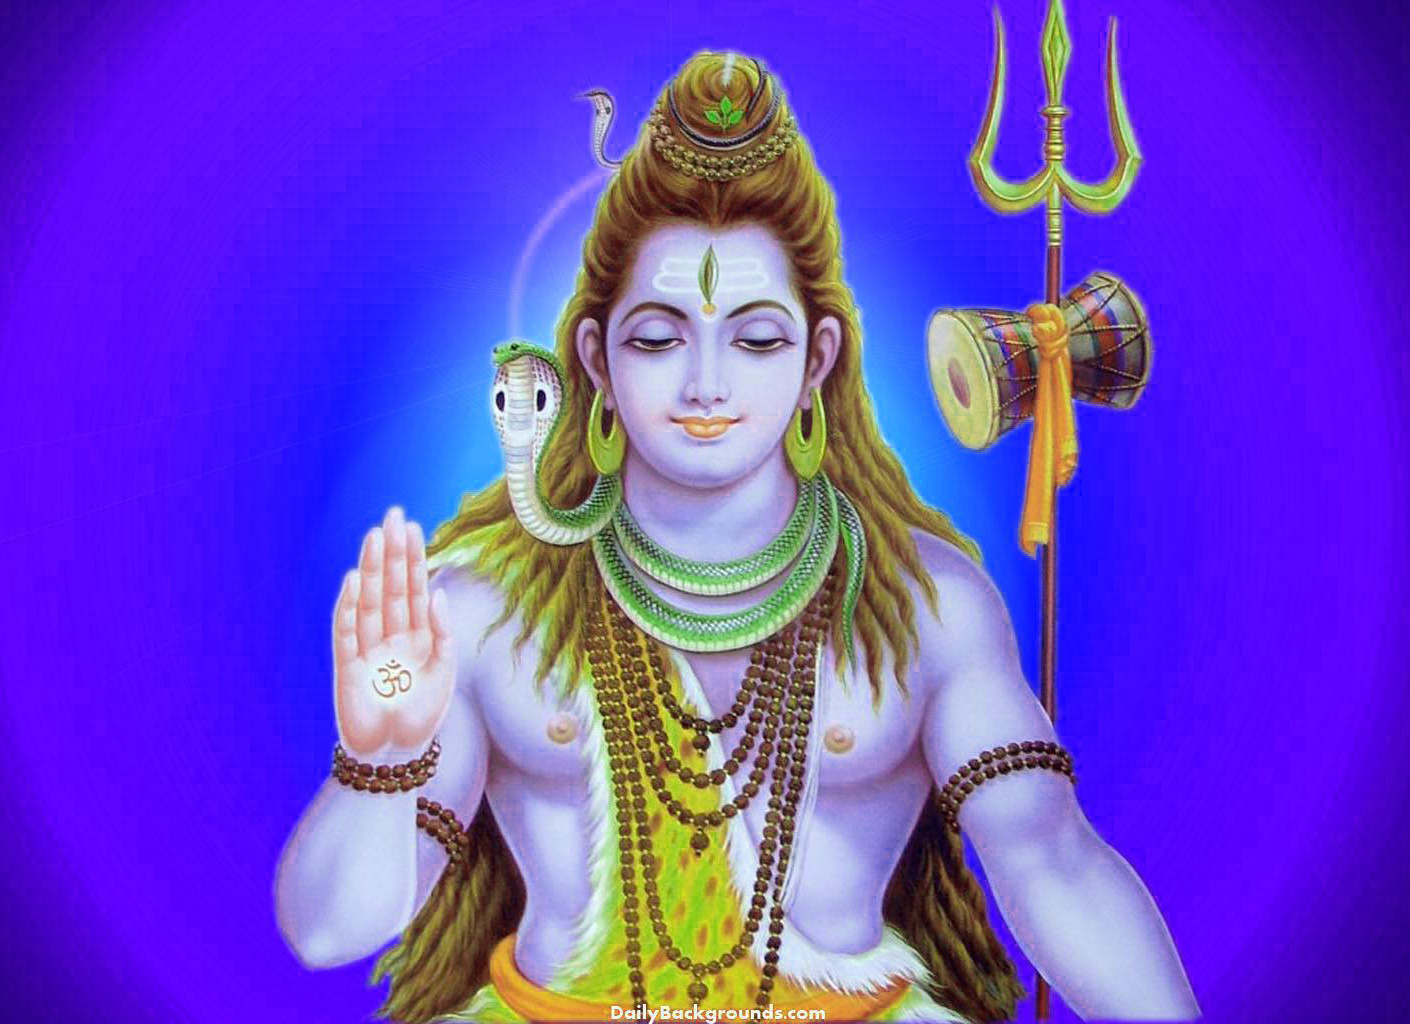 Lord Shiva Images 79